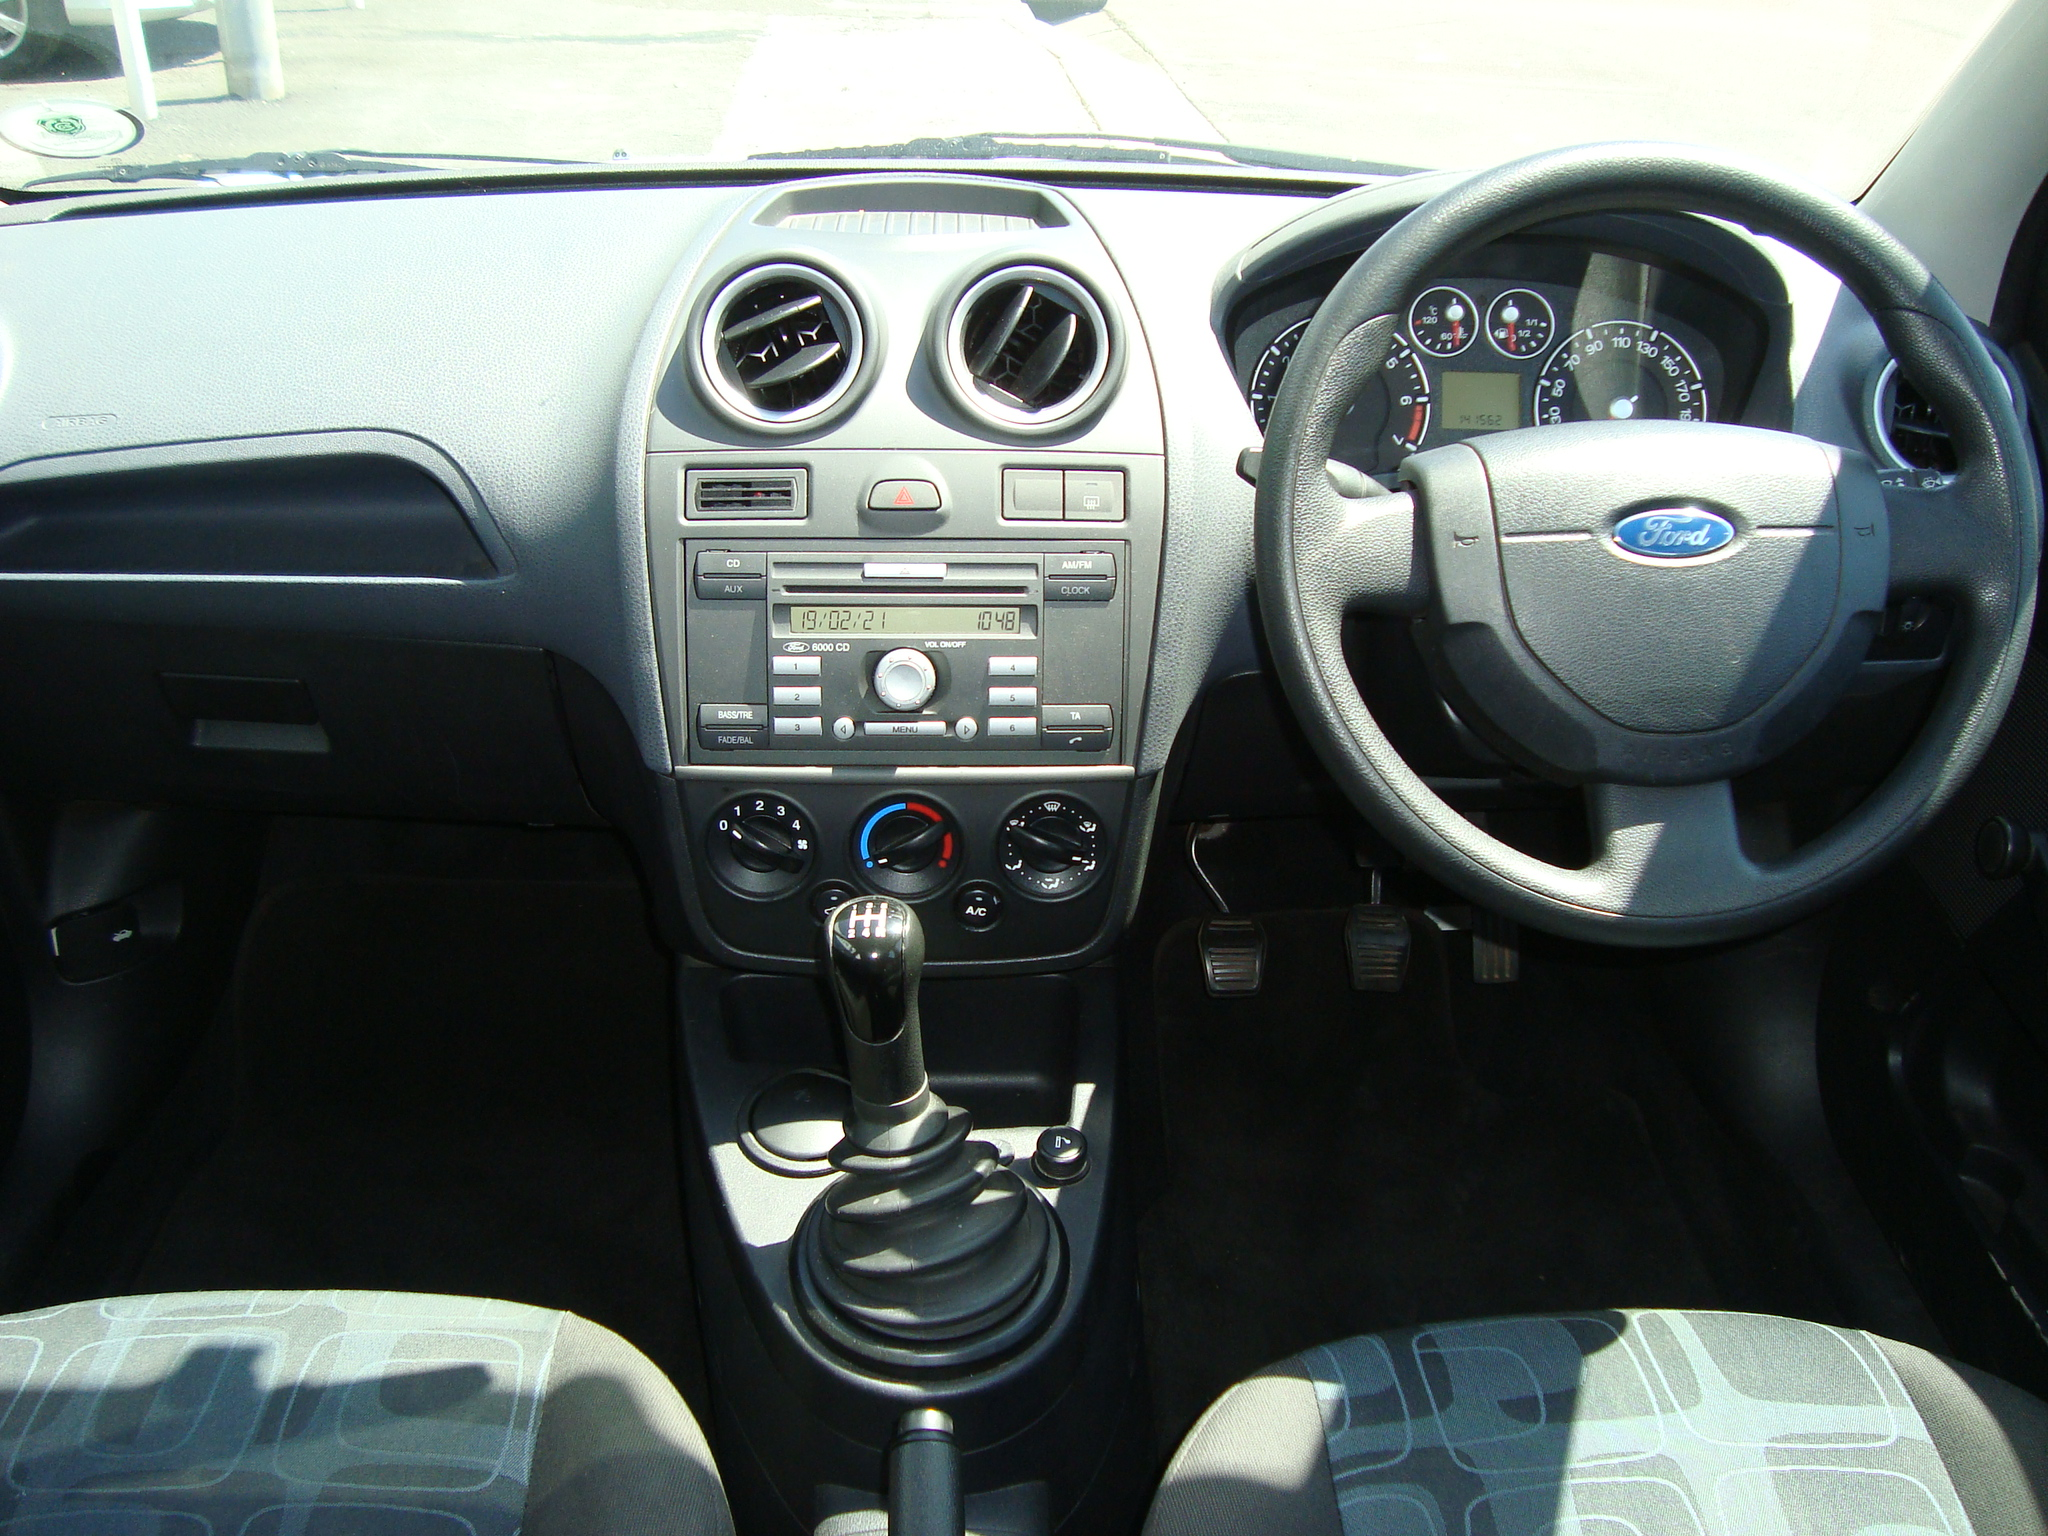 2008 Ford Fiesta 1.4i Ambiente 5DR full